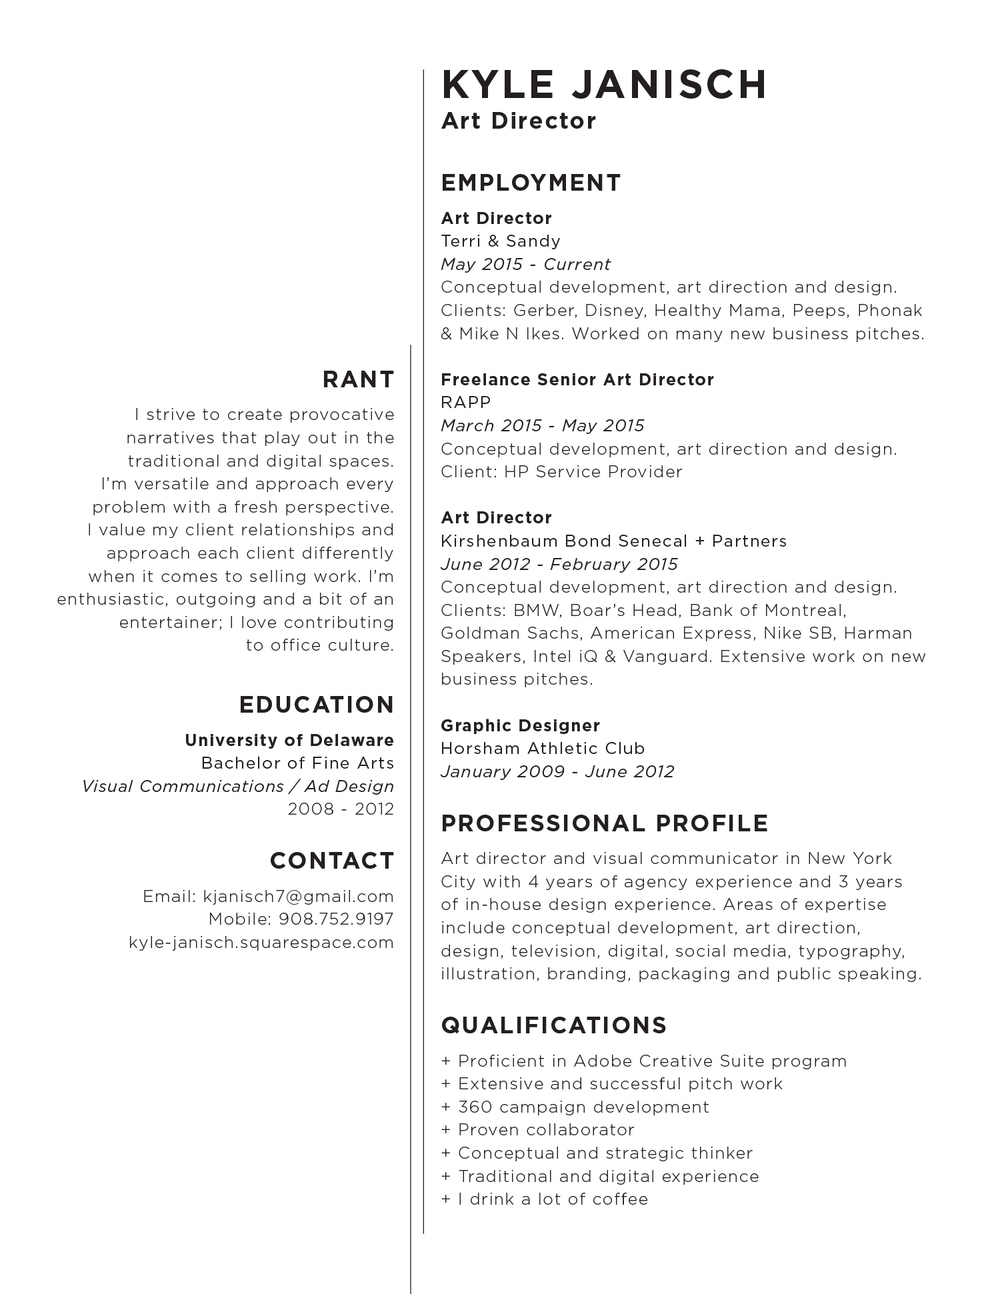 Resume Kyle Janisch Art Director